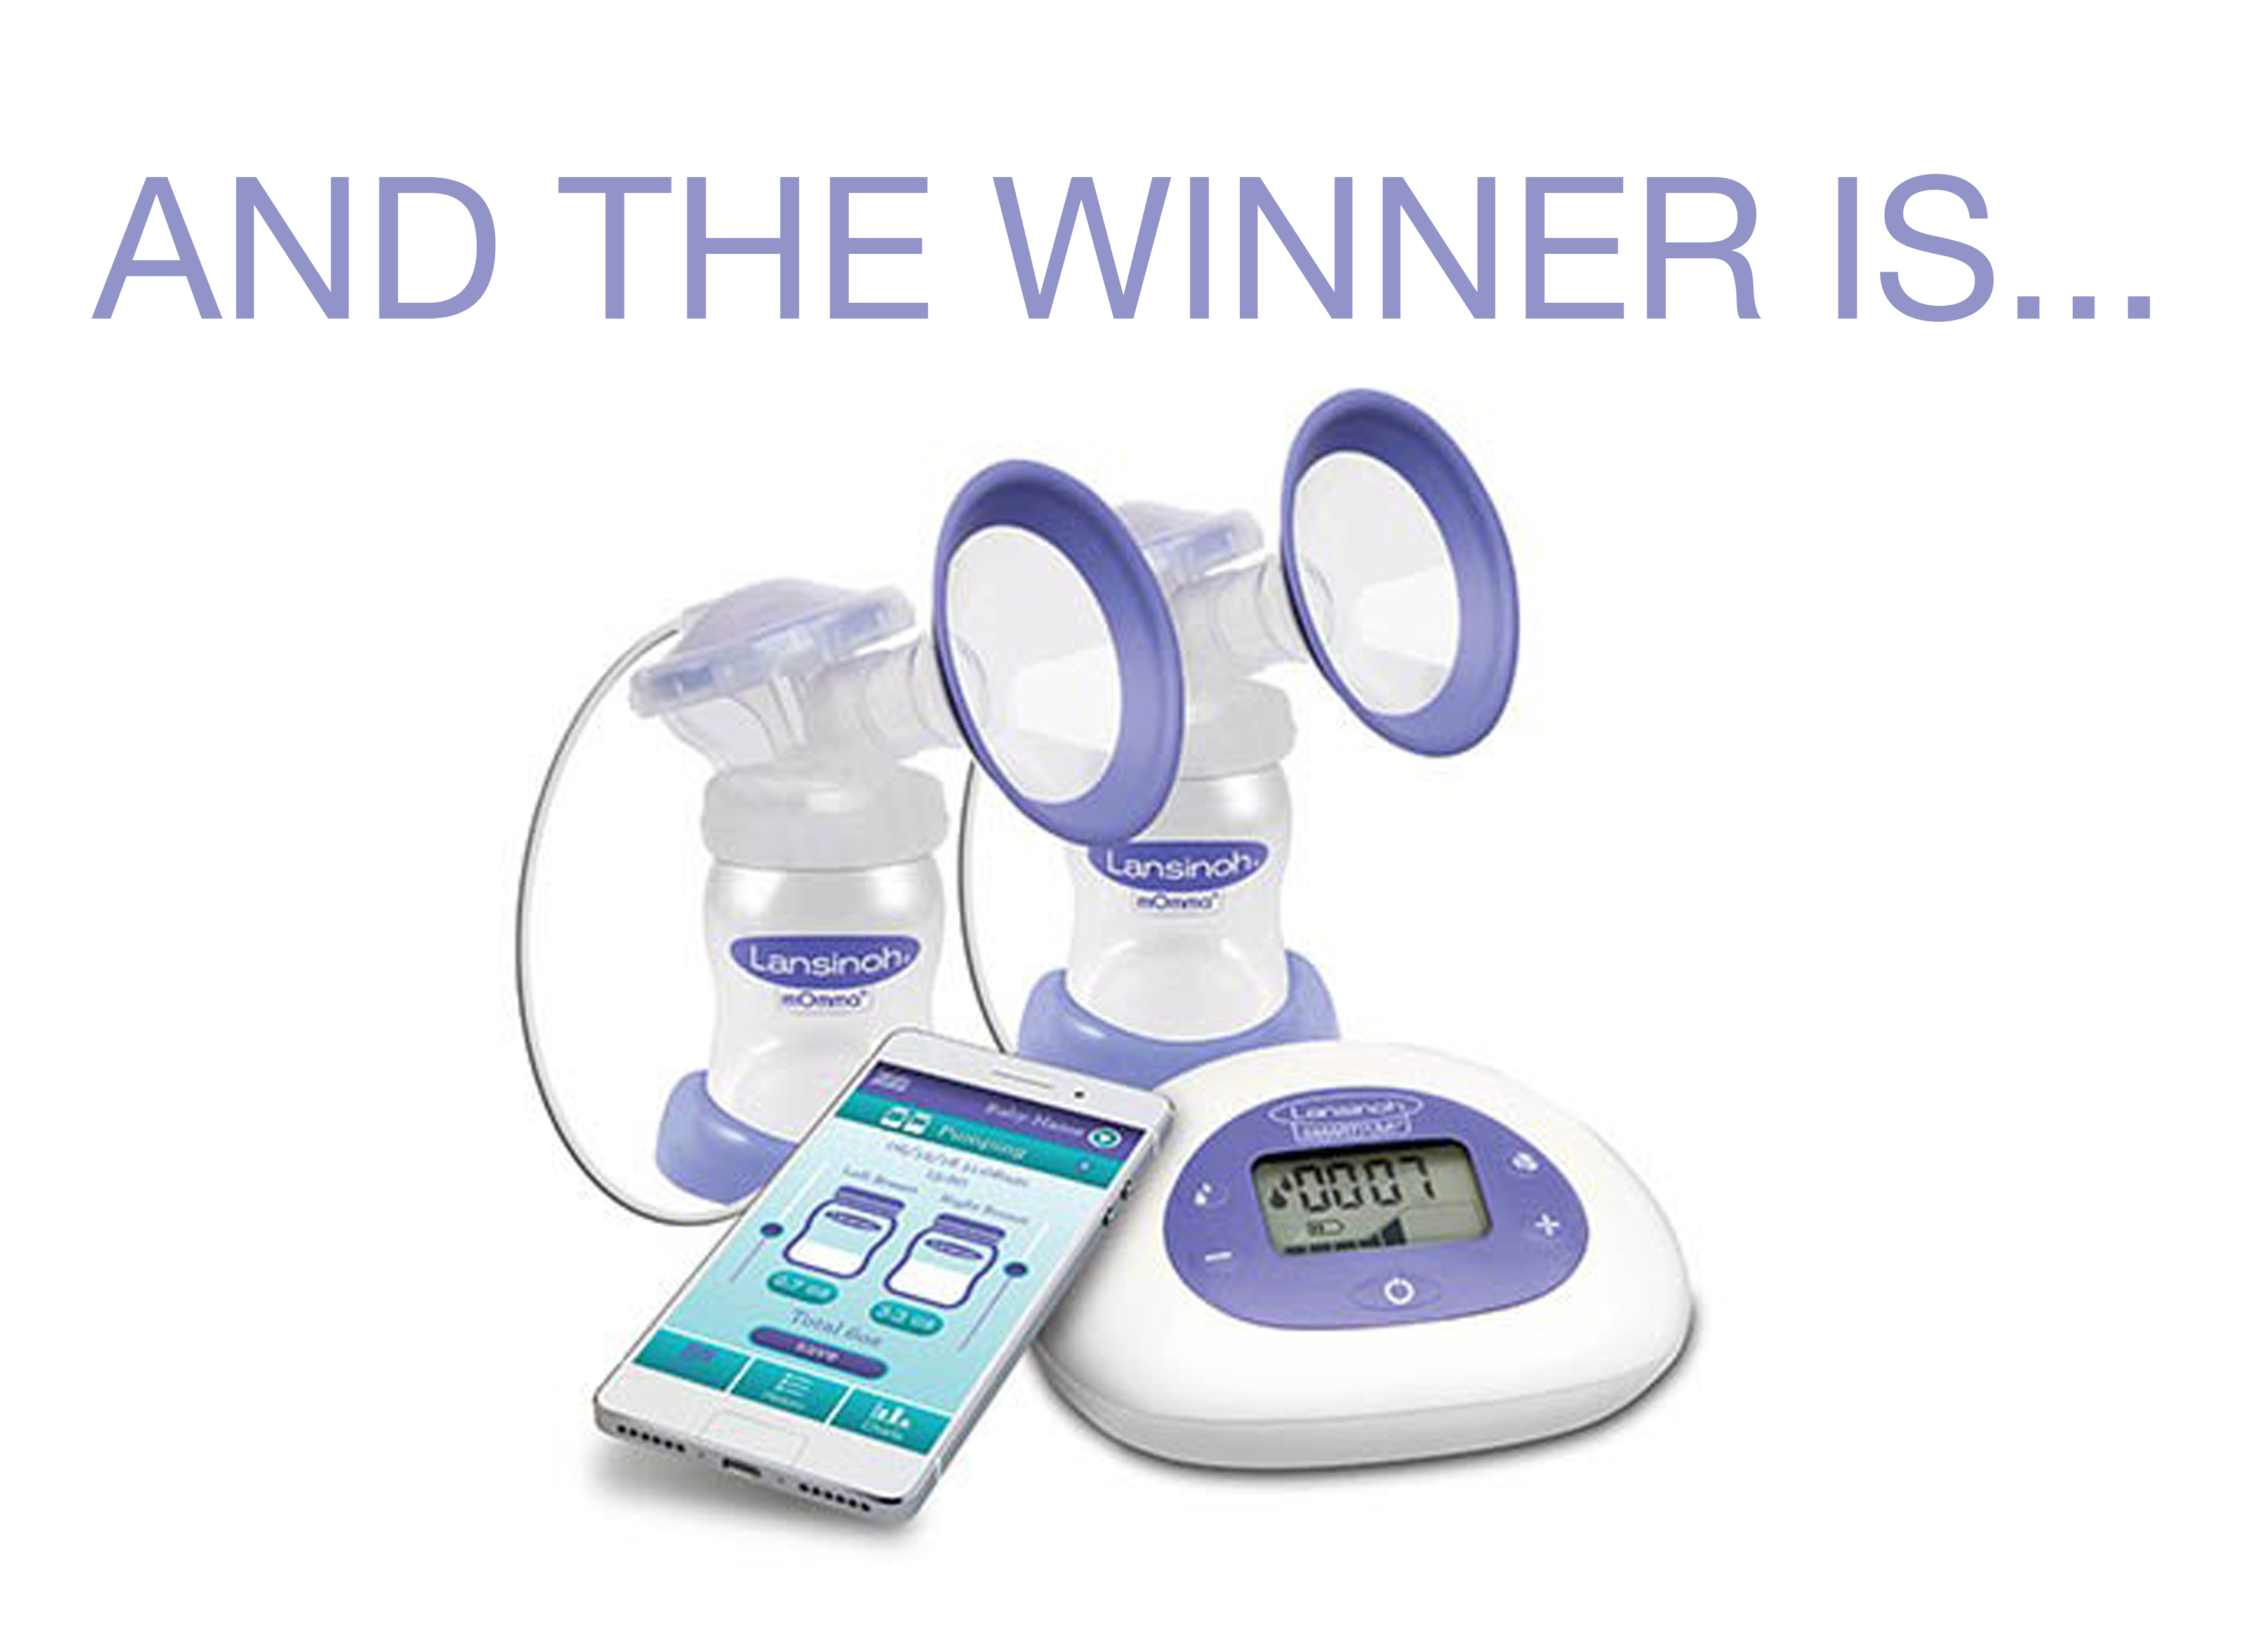 lansinoh, lansinoh smartpump, lansinoh smartpump giveaway, breast pump, breast feeding, best breast pump